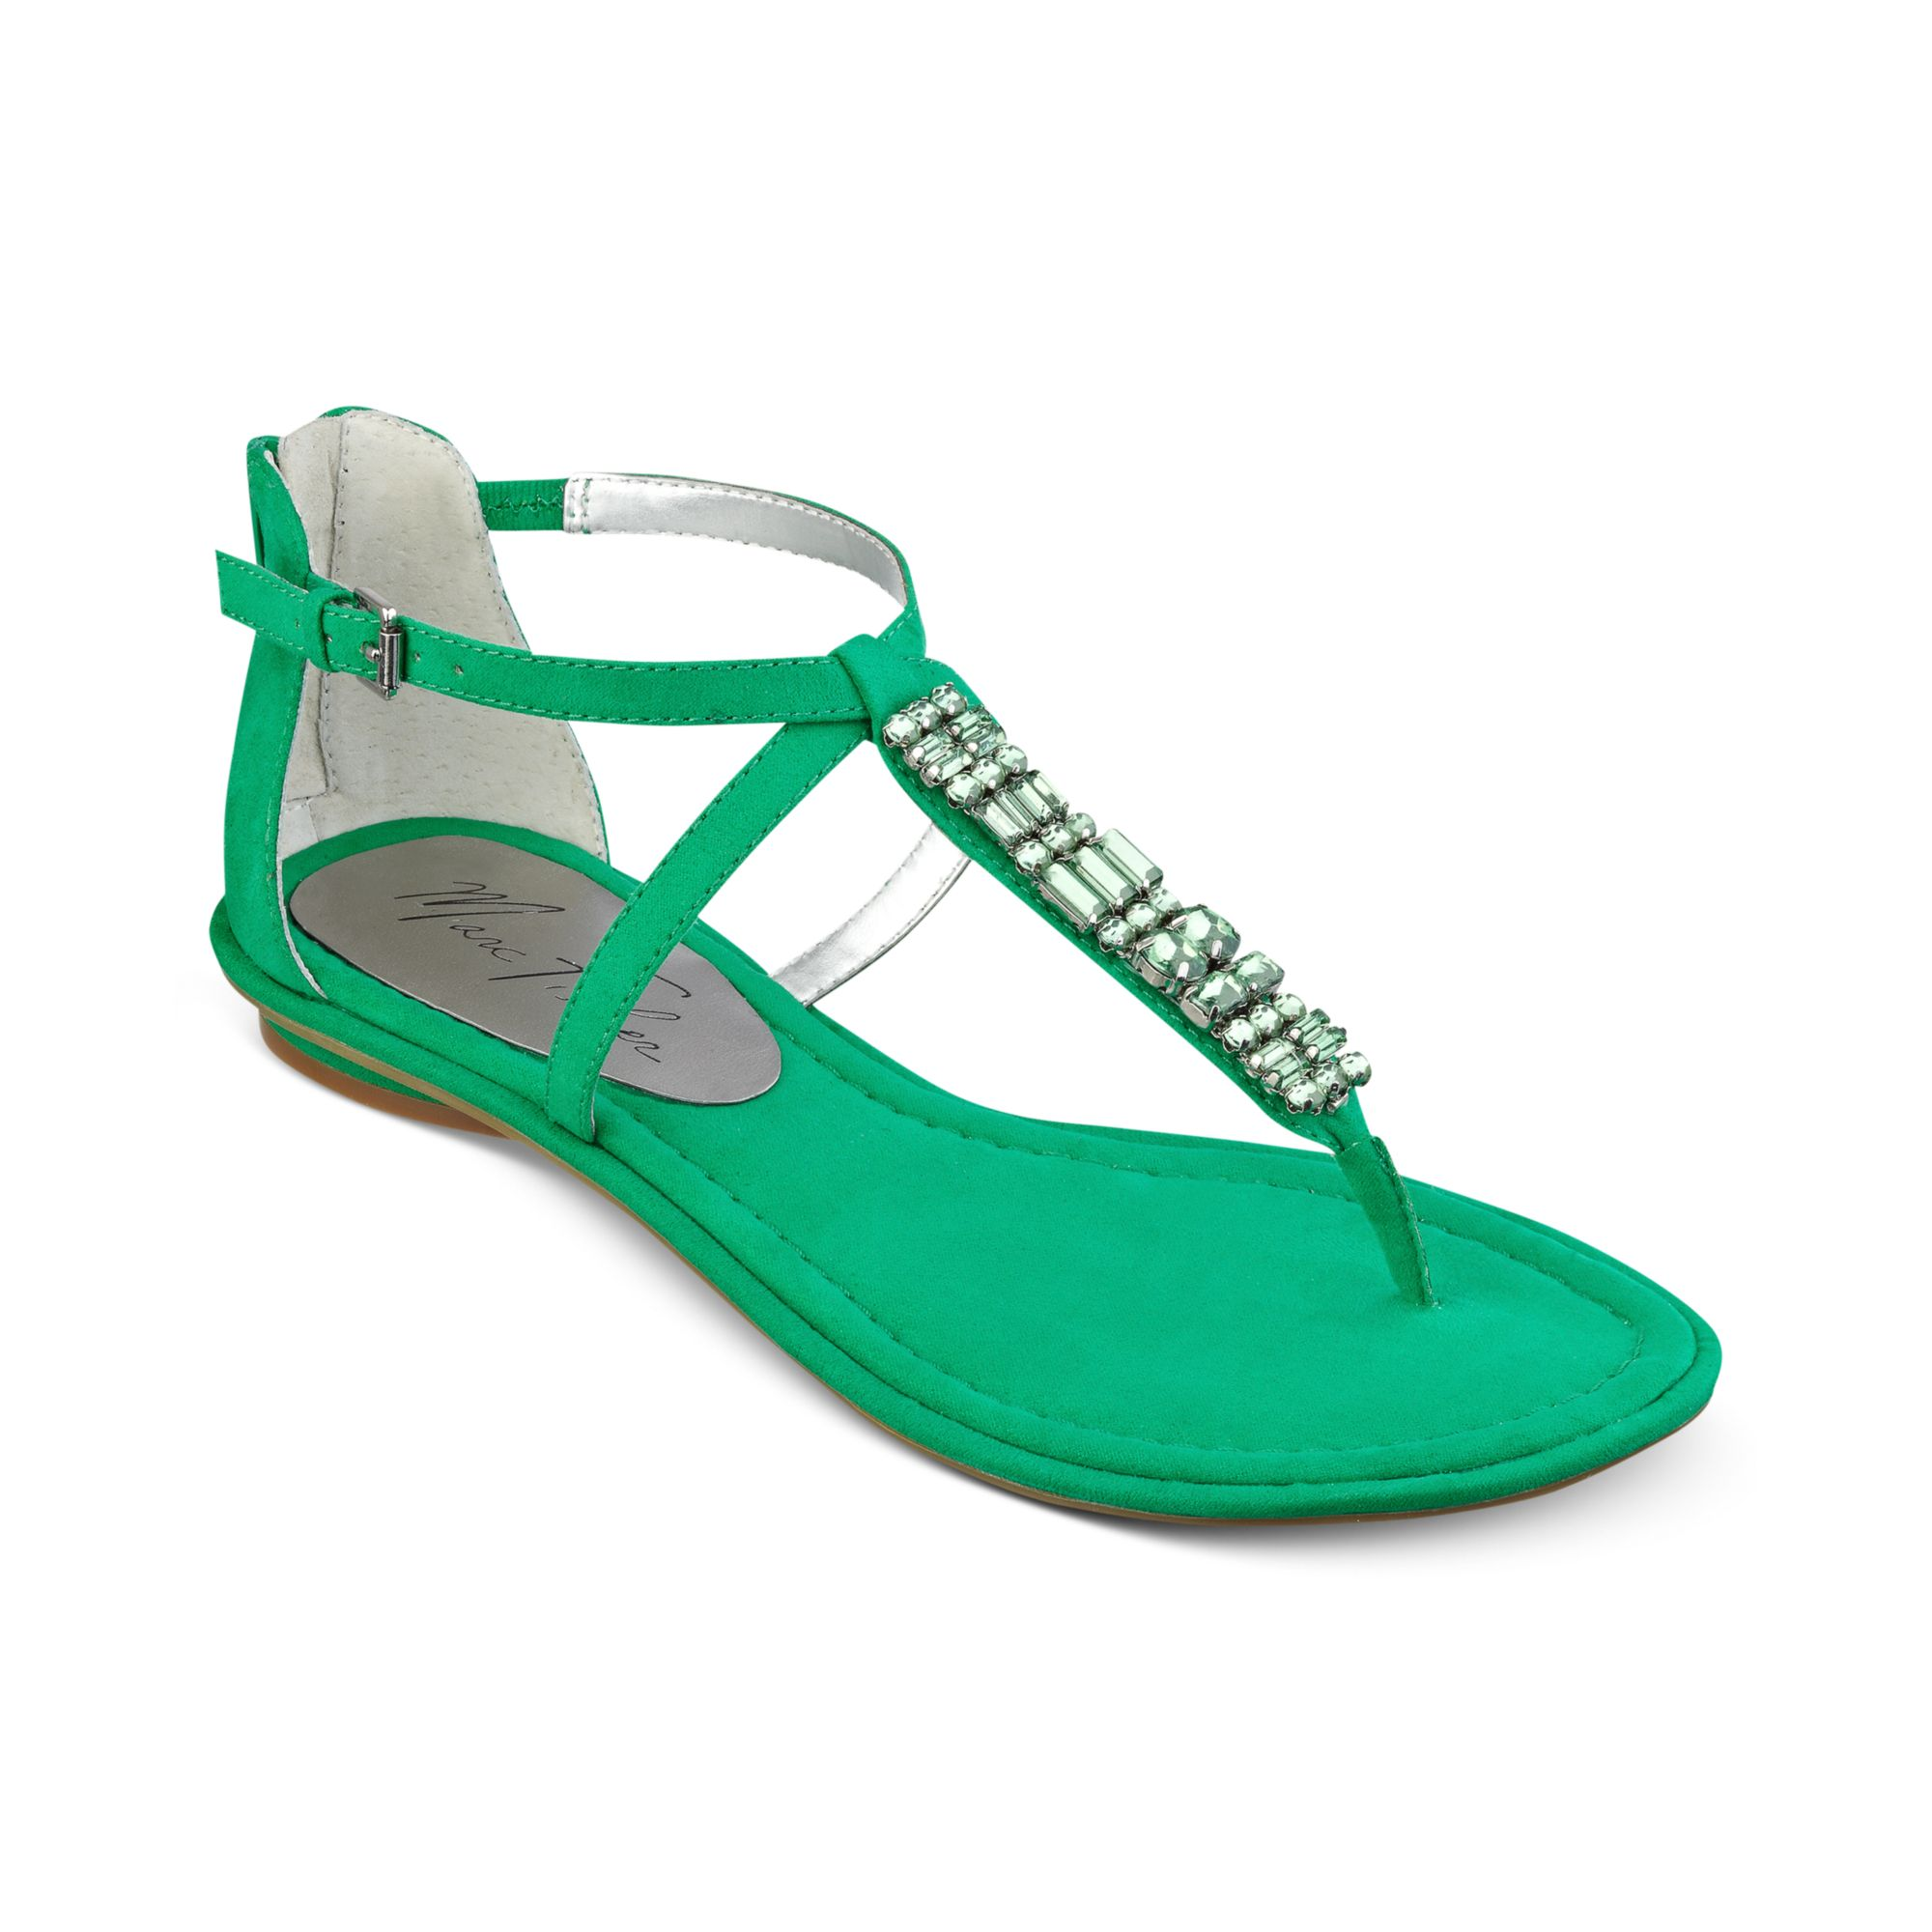 16a65663e1f2 Lyst - Marc Fisher Mard Flat Thong Sandals in Green